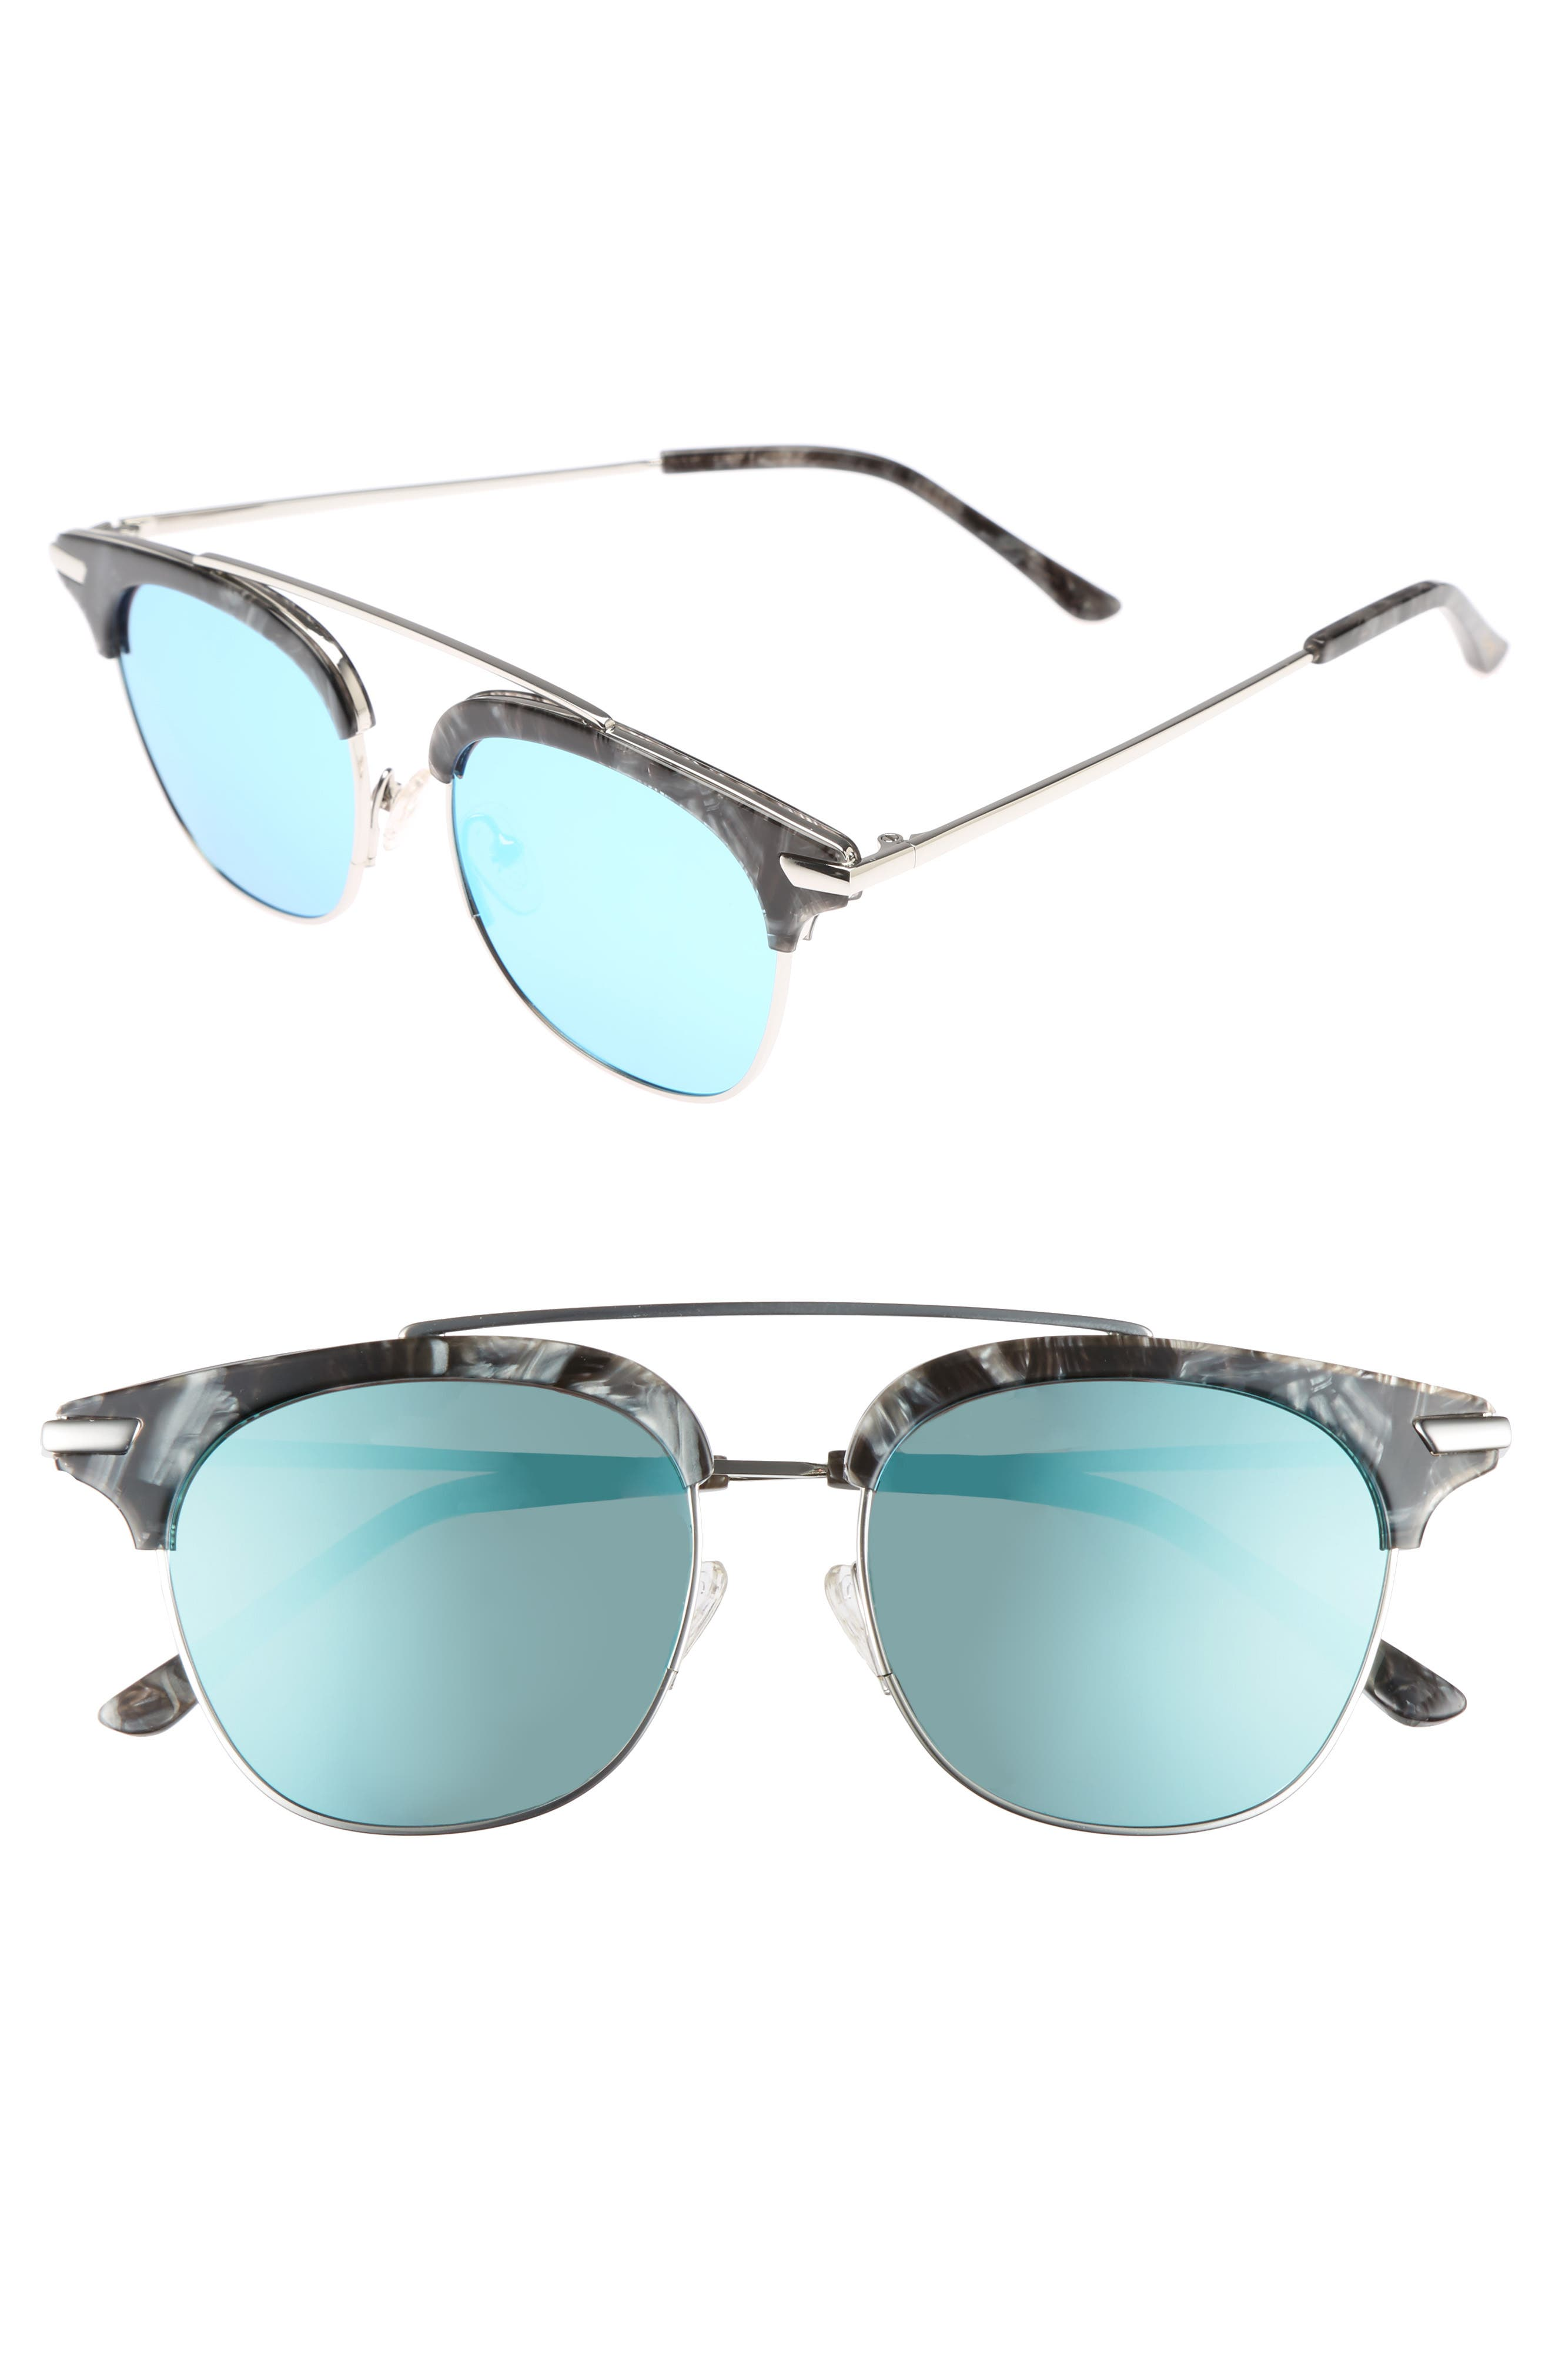 Midway 51mm Polarized Brow Bar Sunglasses,                             Main thumbnail 1, color,                             BLUE